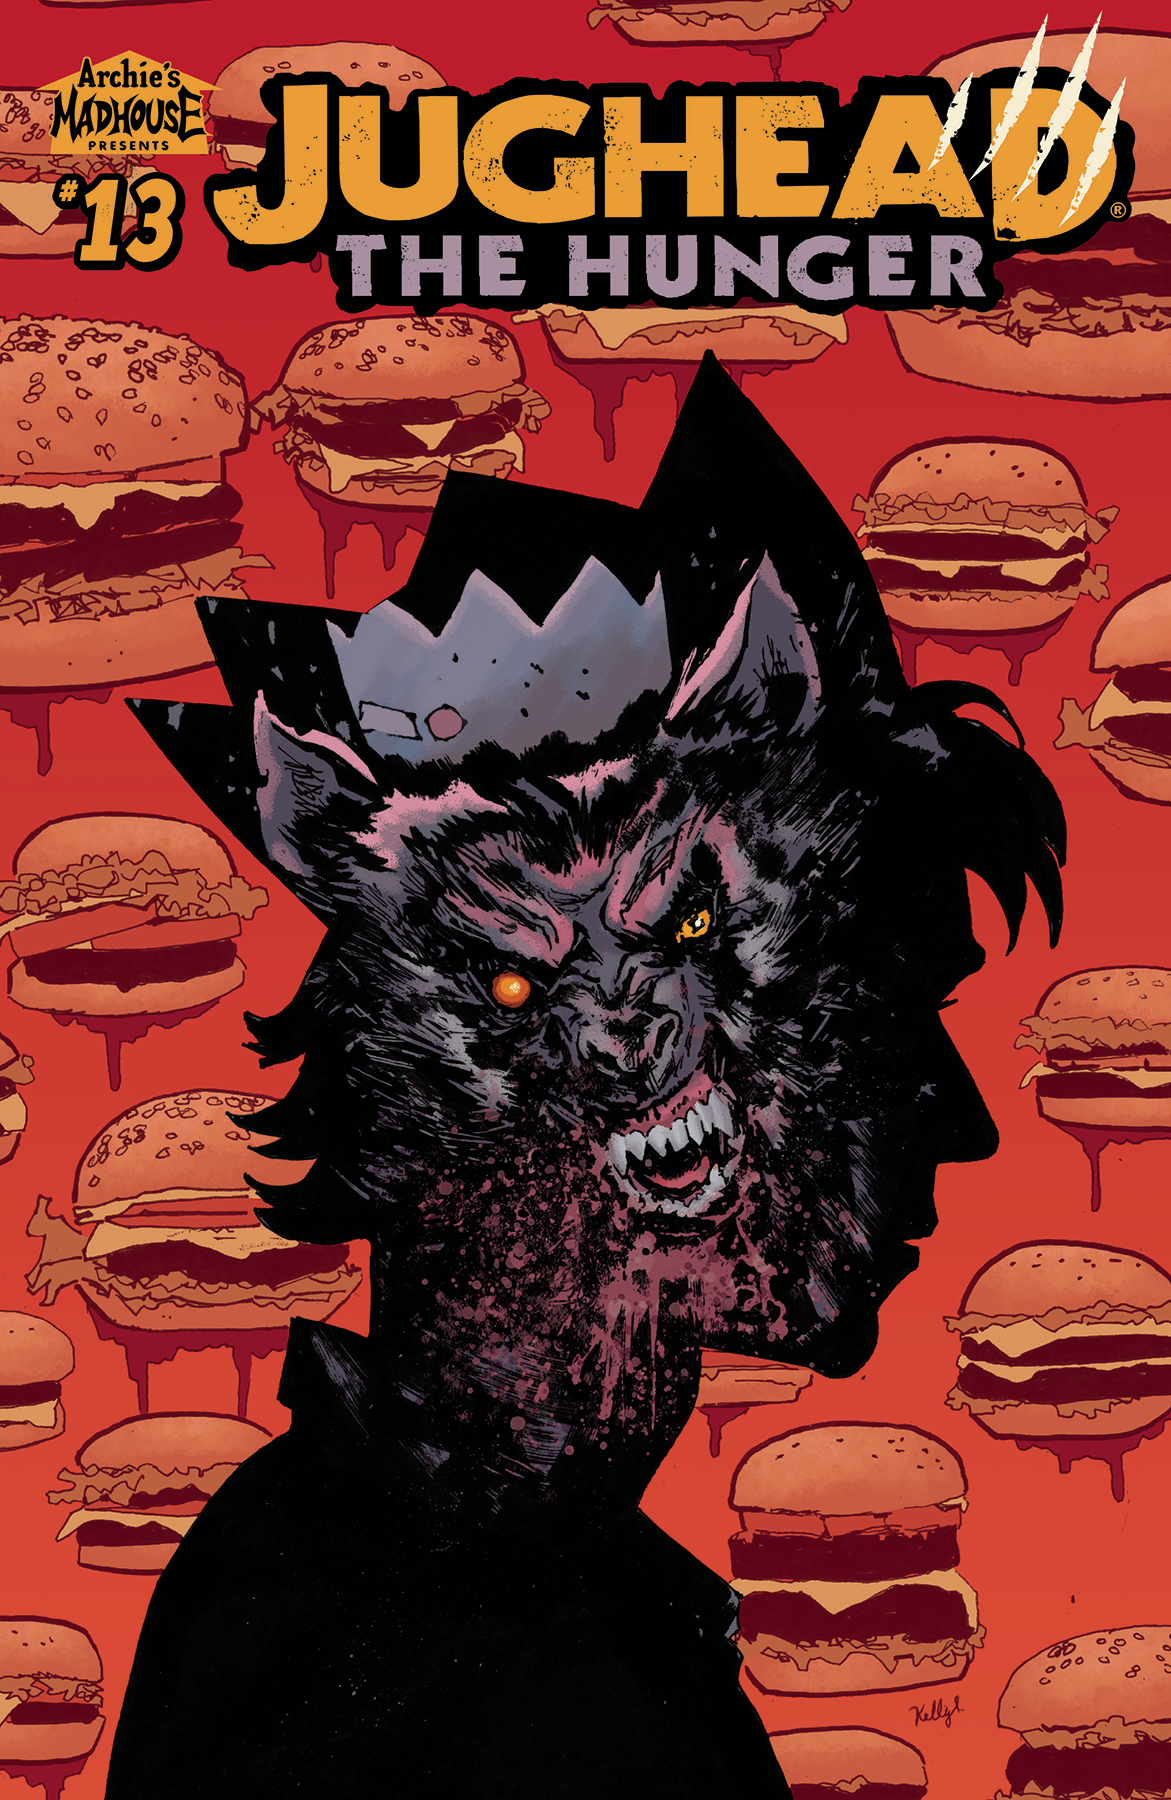 JUGHEAD THE HUNGER #13 CVR C SCOTT (MR)